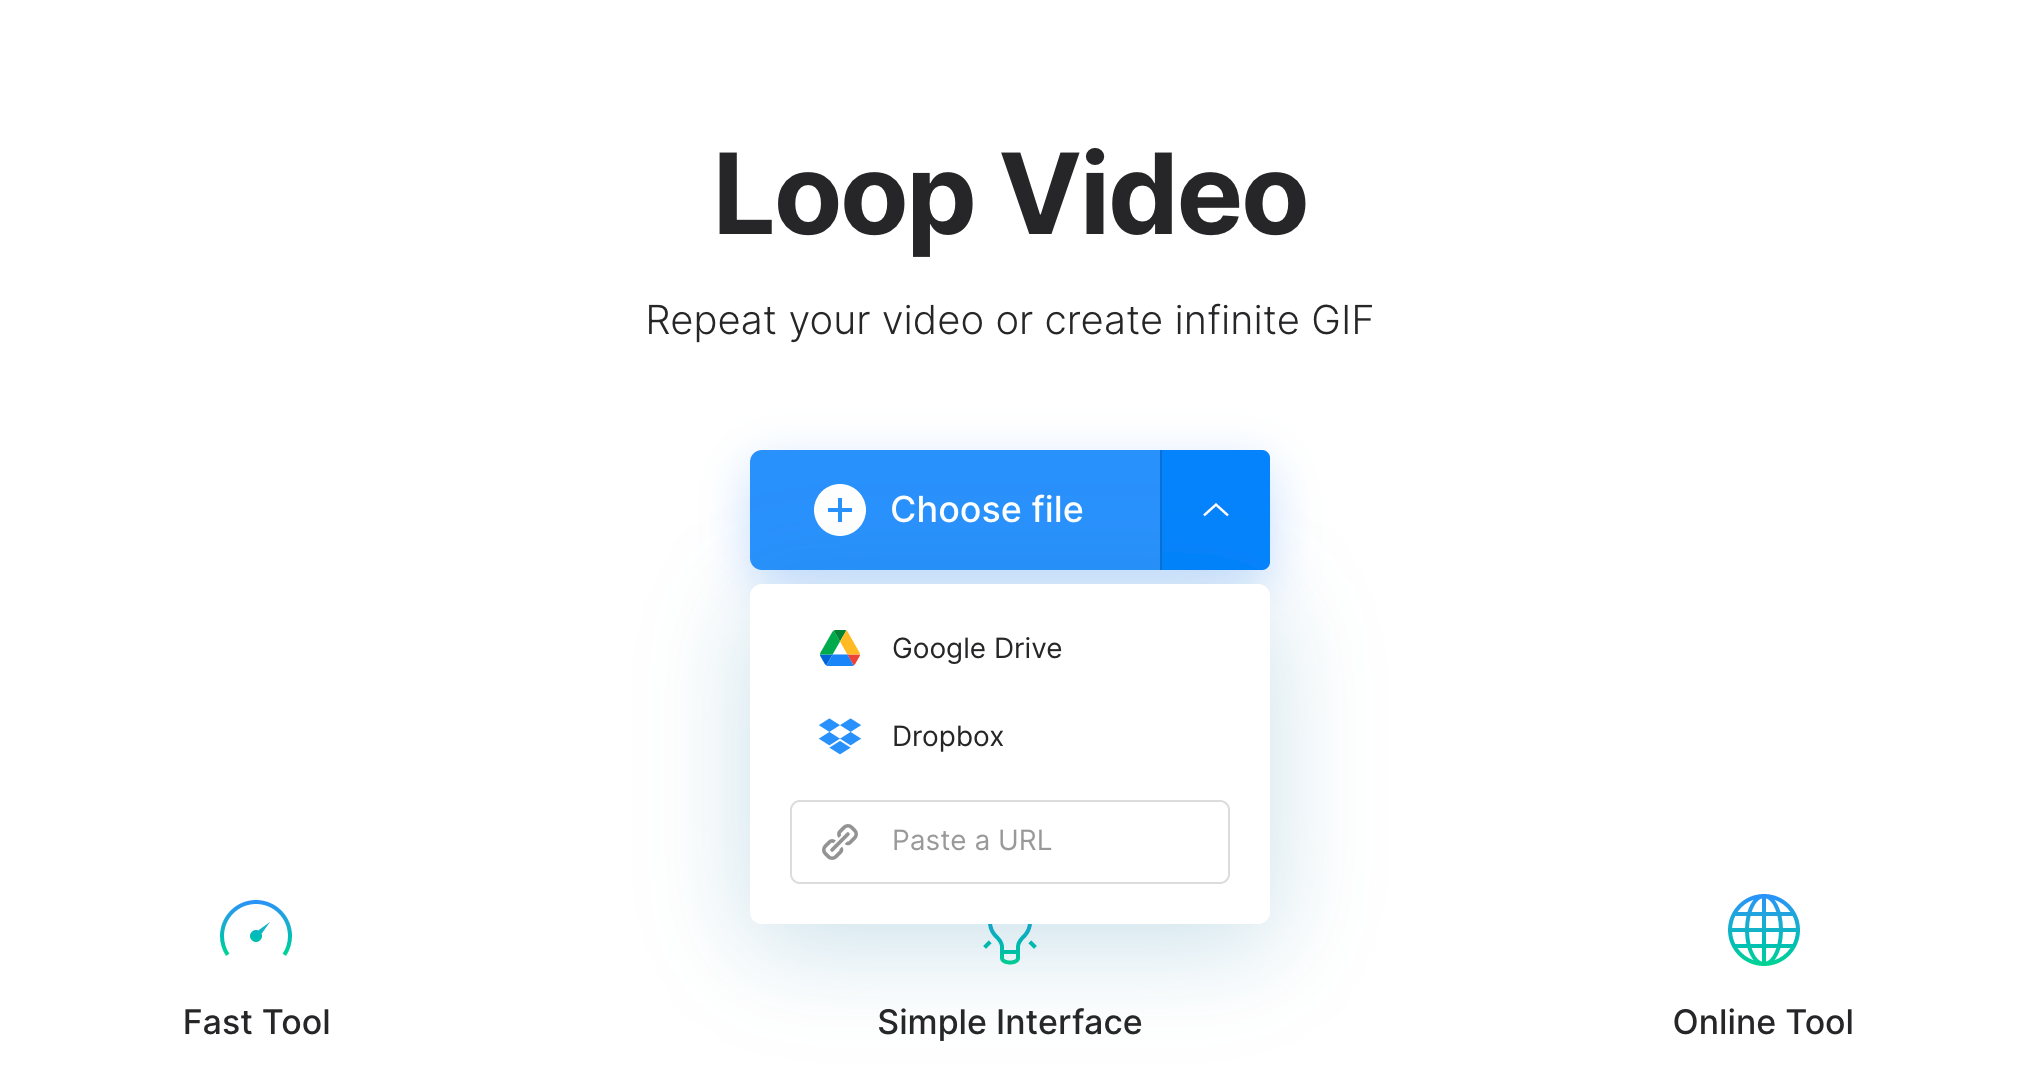 Upload video clip to make endless GIF